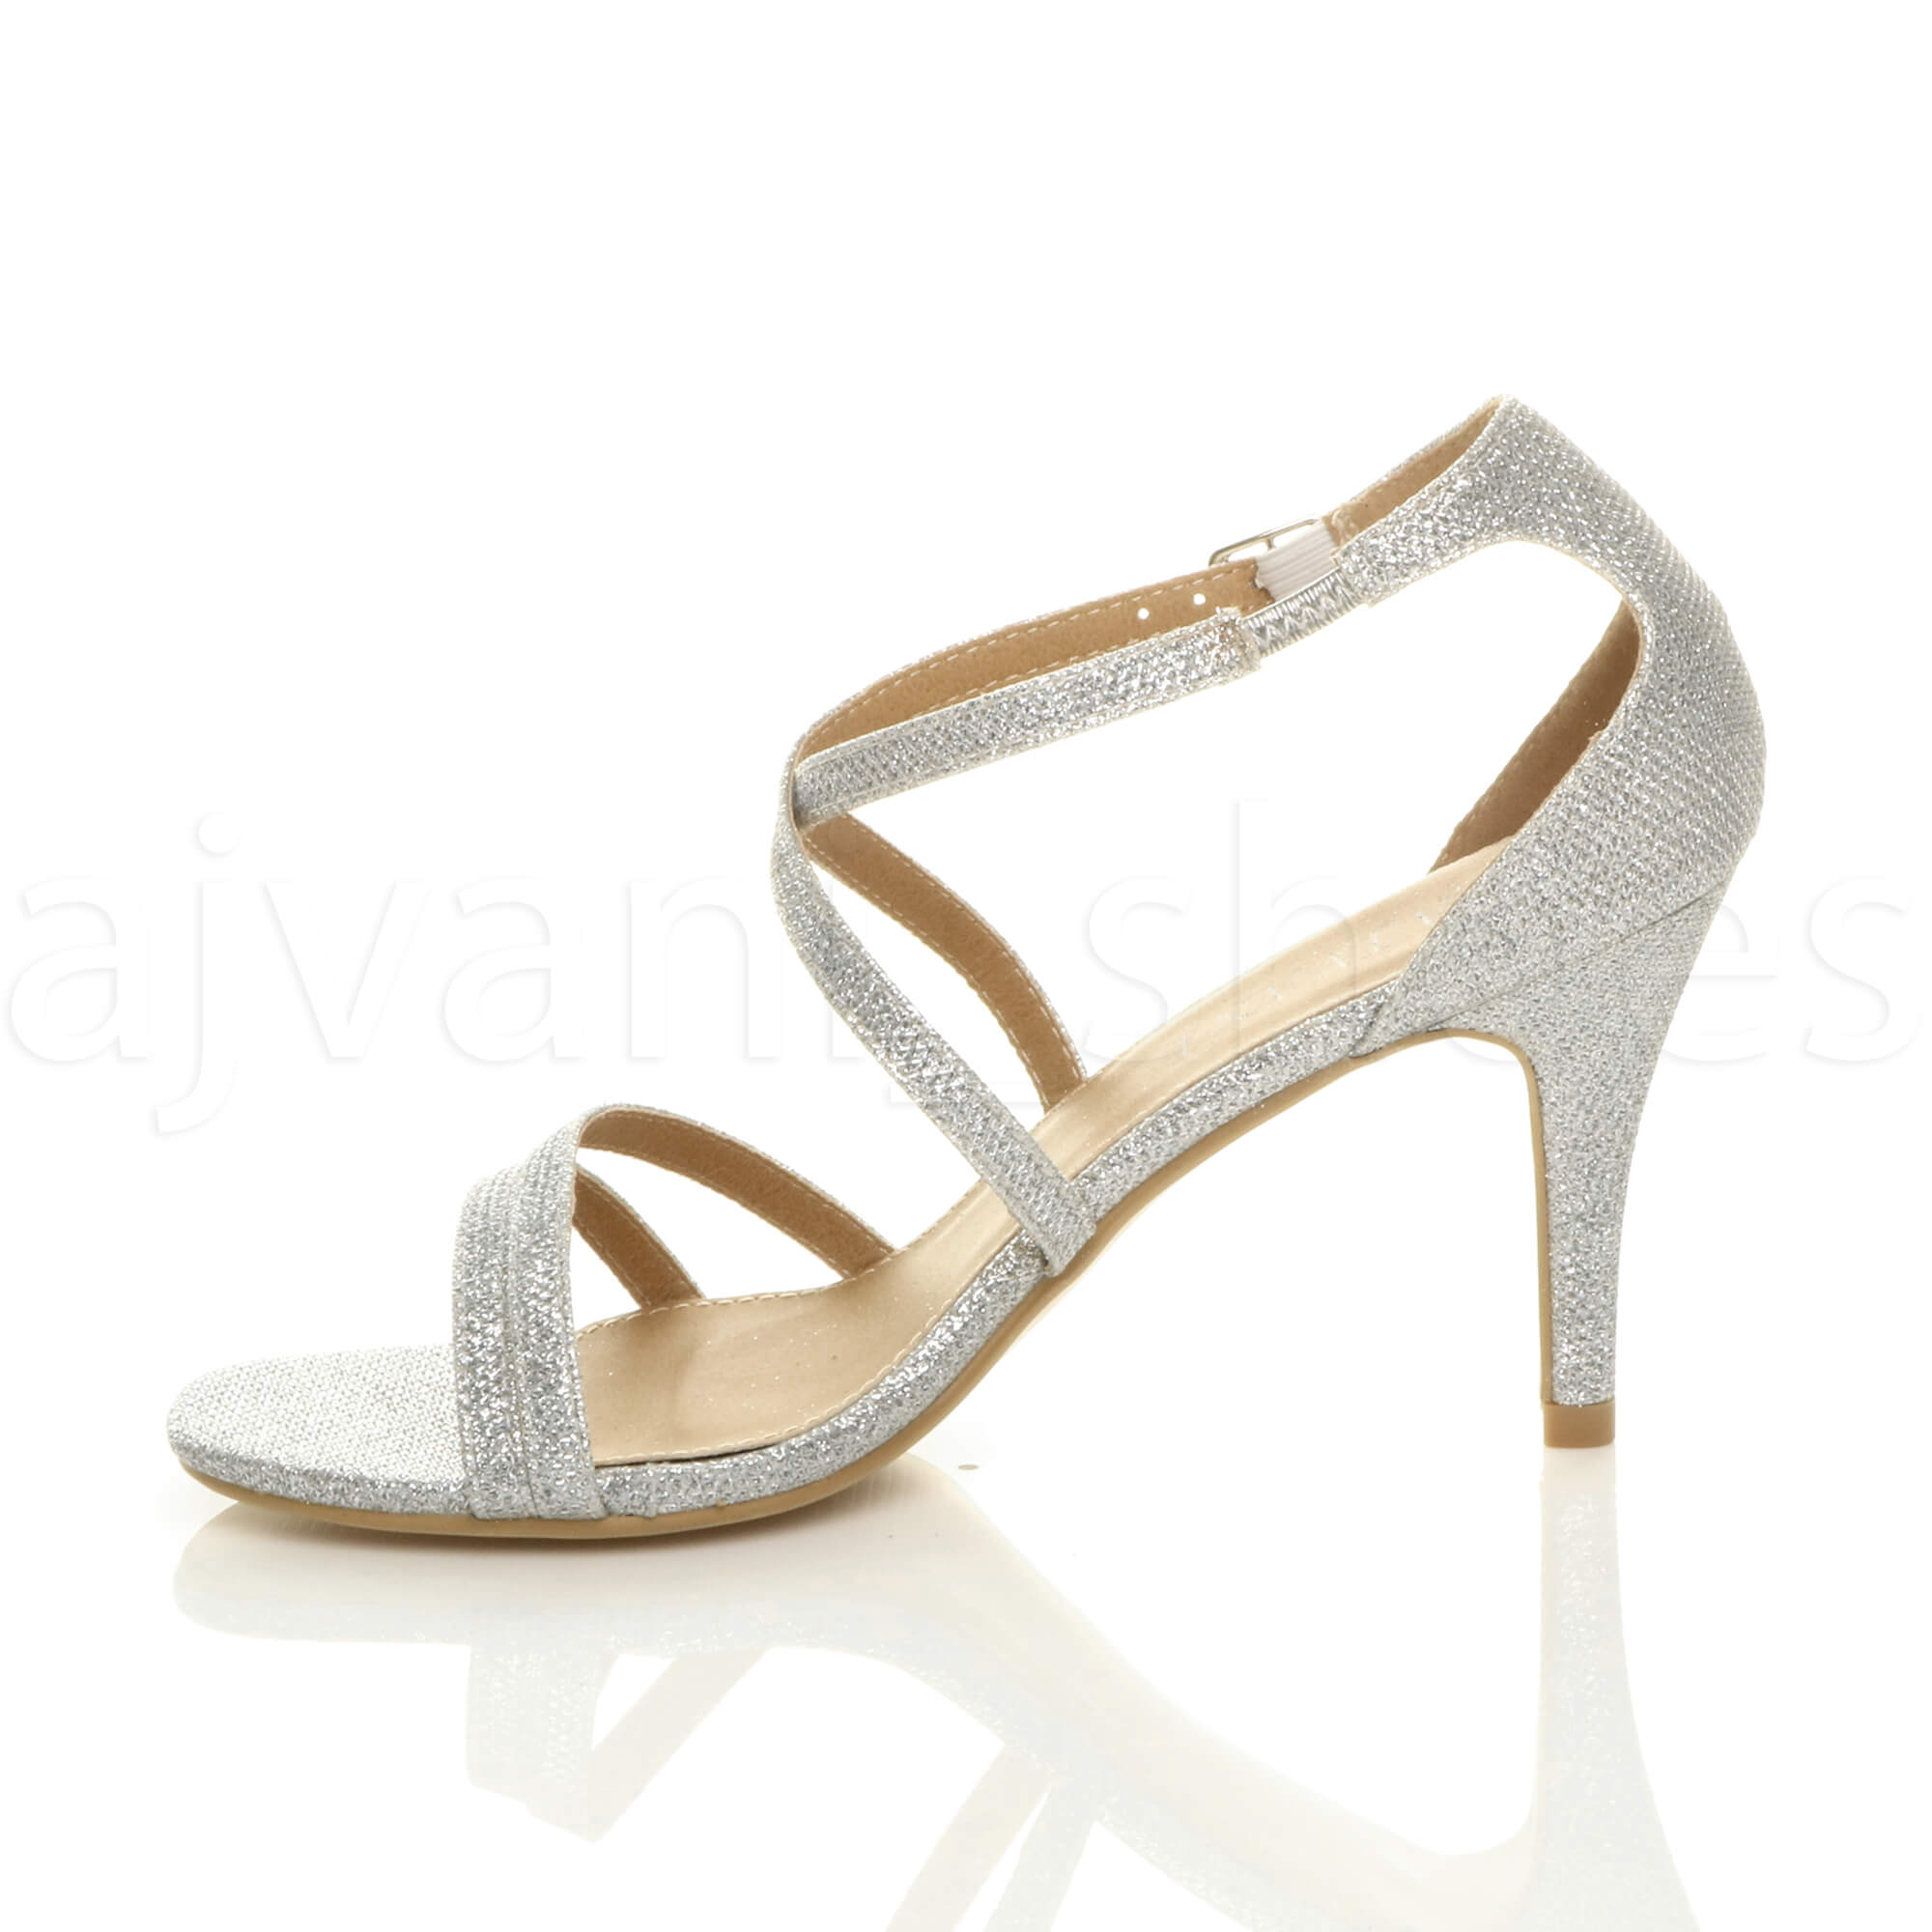 WOMENS-LADIES-MID-HIGH-HEEL-STRAPPY-CROSSOVER-WEDDING-PROM-SANDALS-SHOES-SIZE thumbnail 179